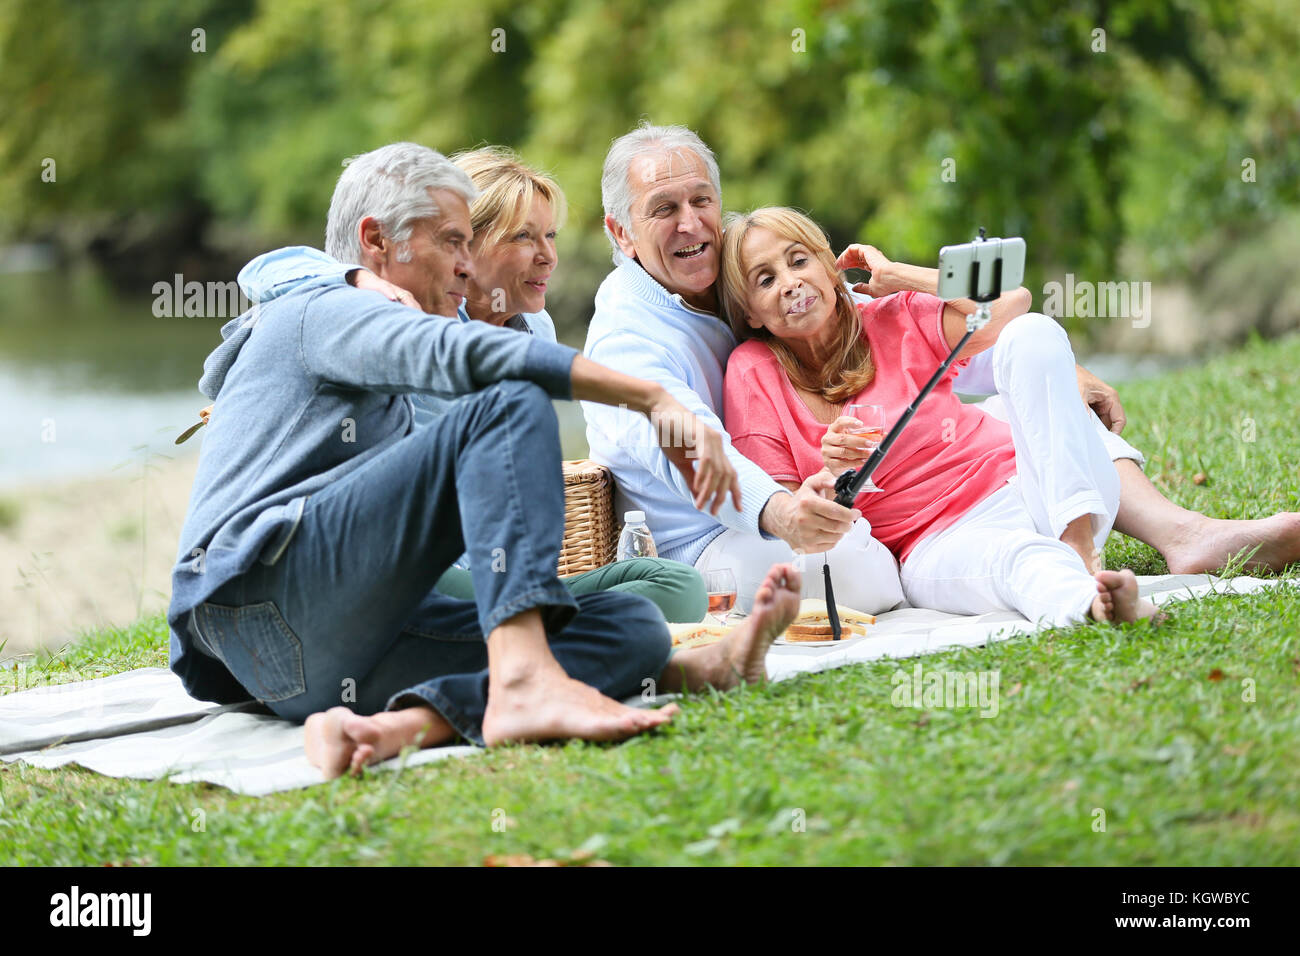 Group of senior people making selfy picture - Stock Image